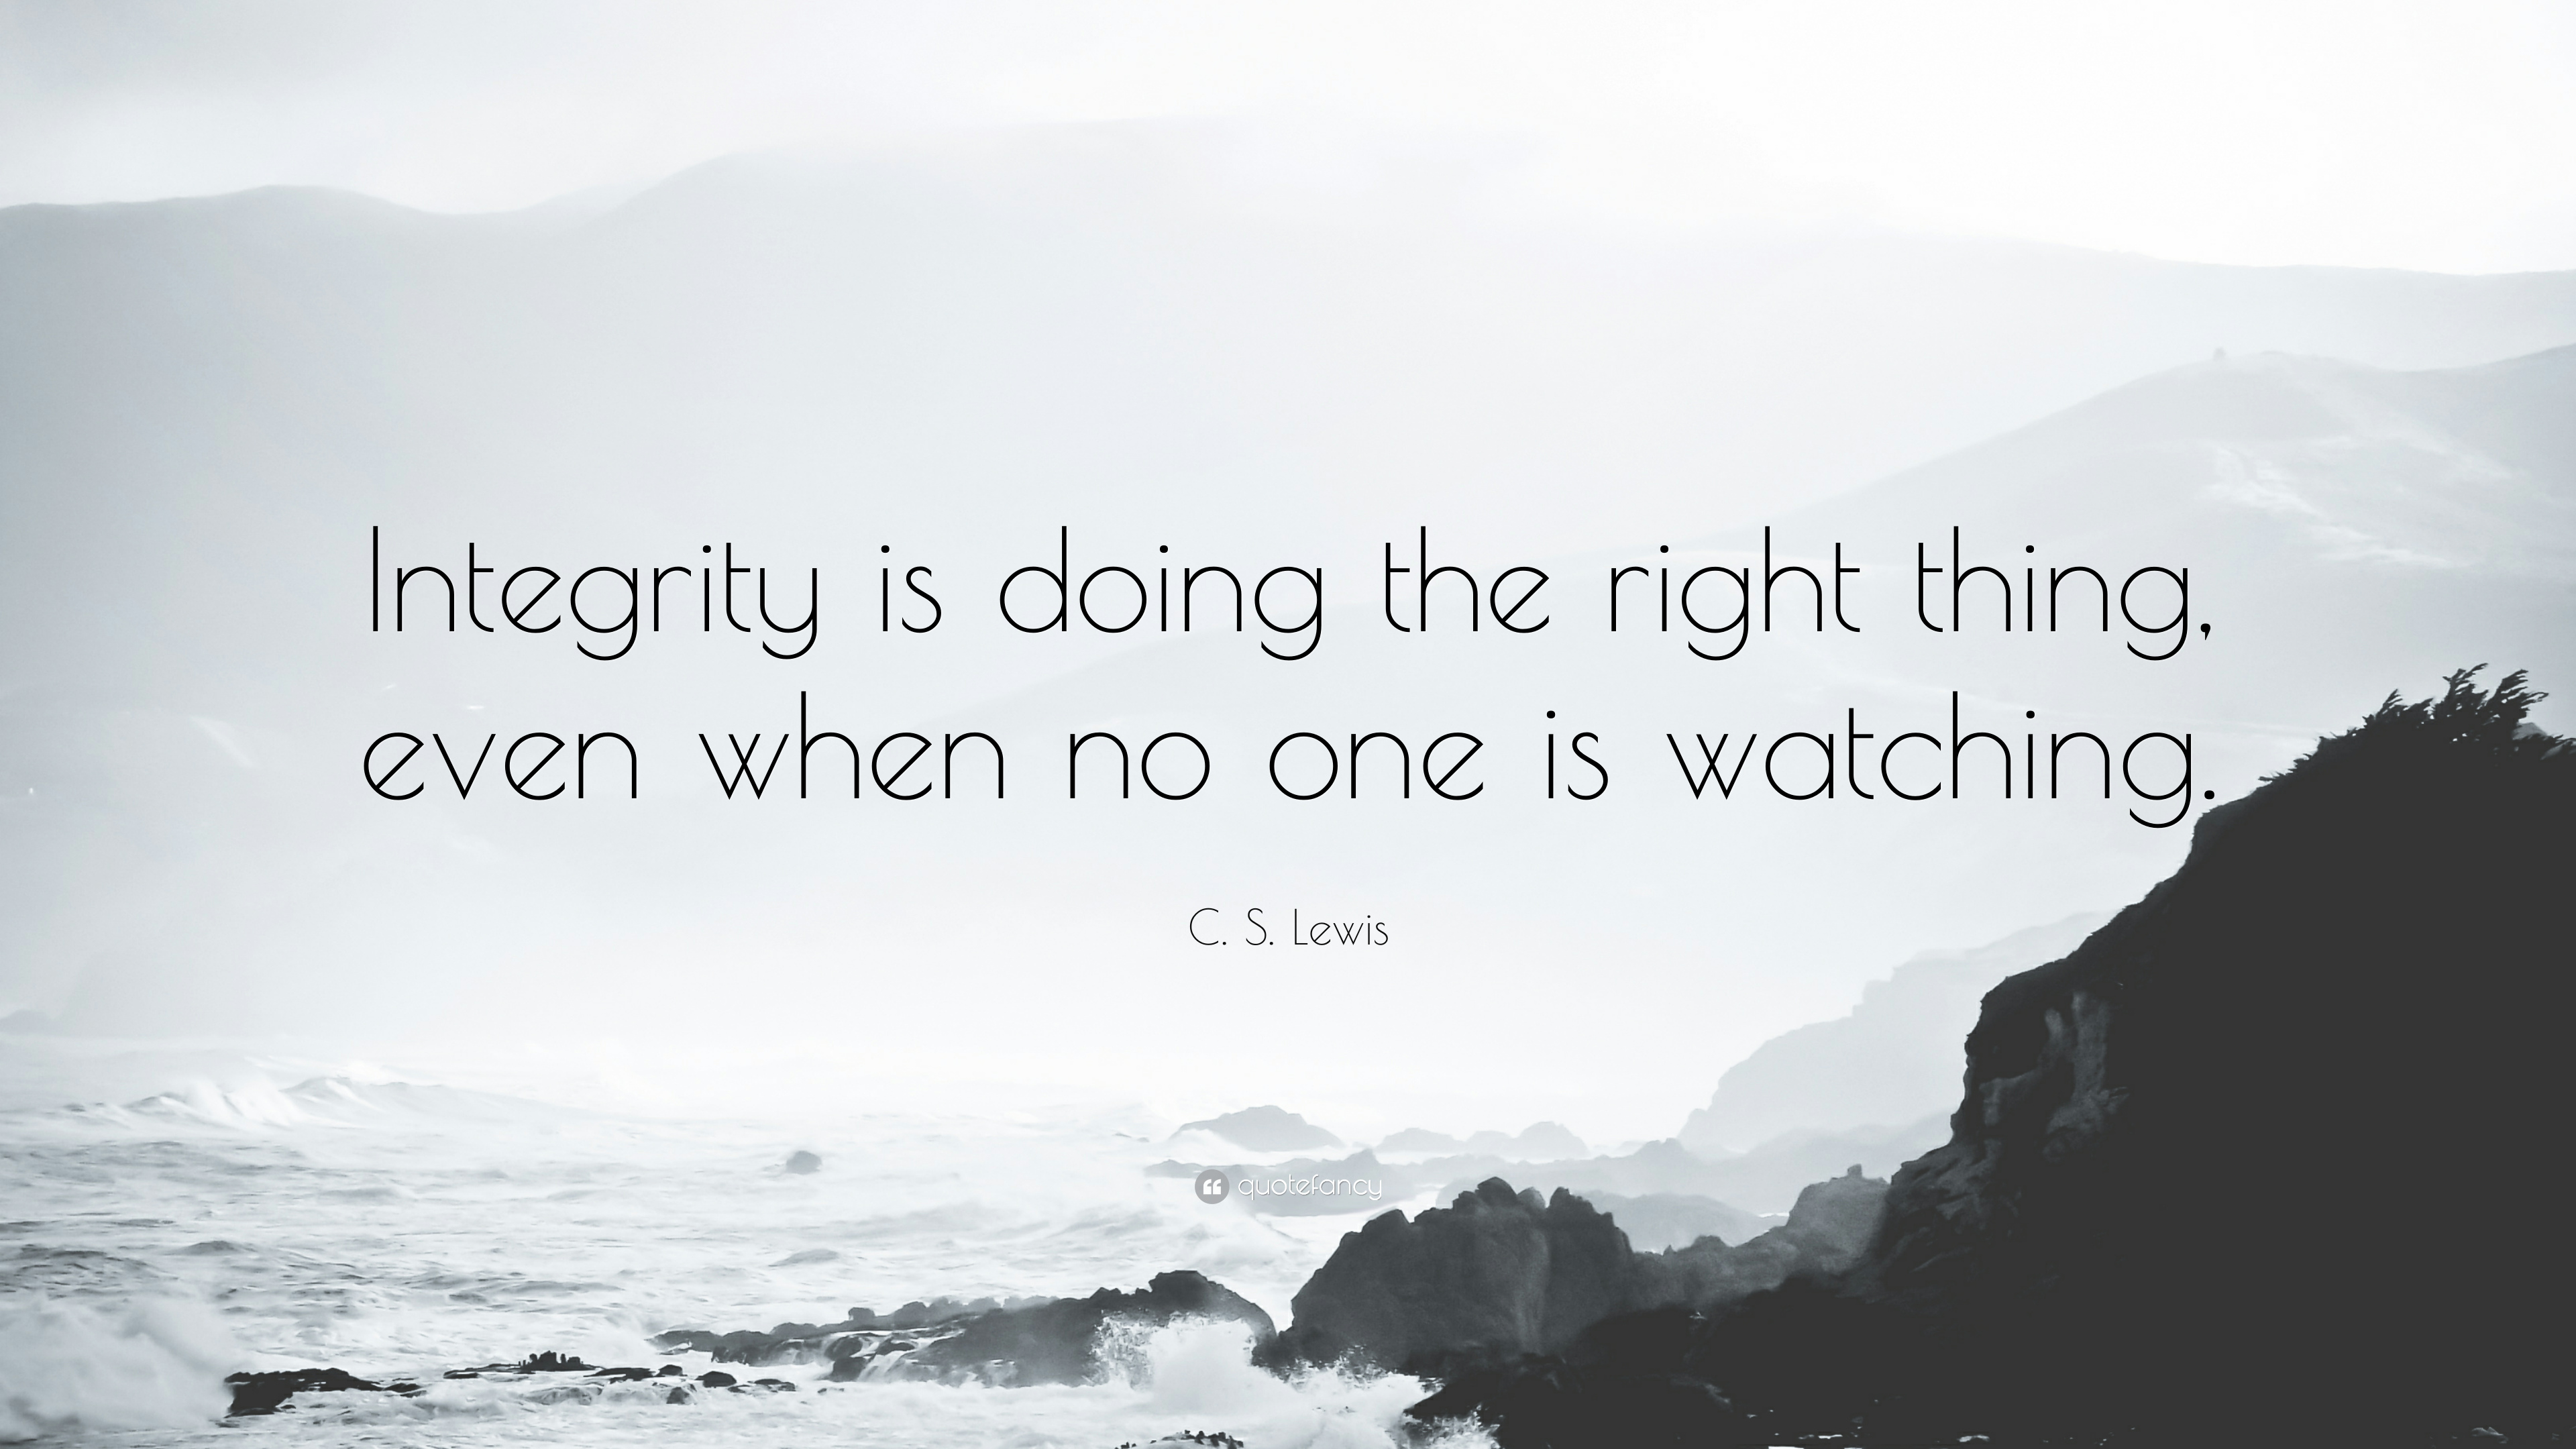 C S Lewis Quote Integrity Is Doing The Right Thing Even When No